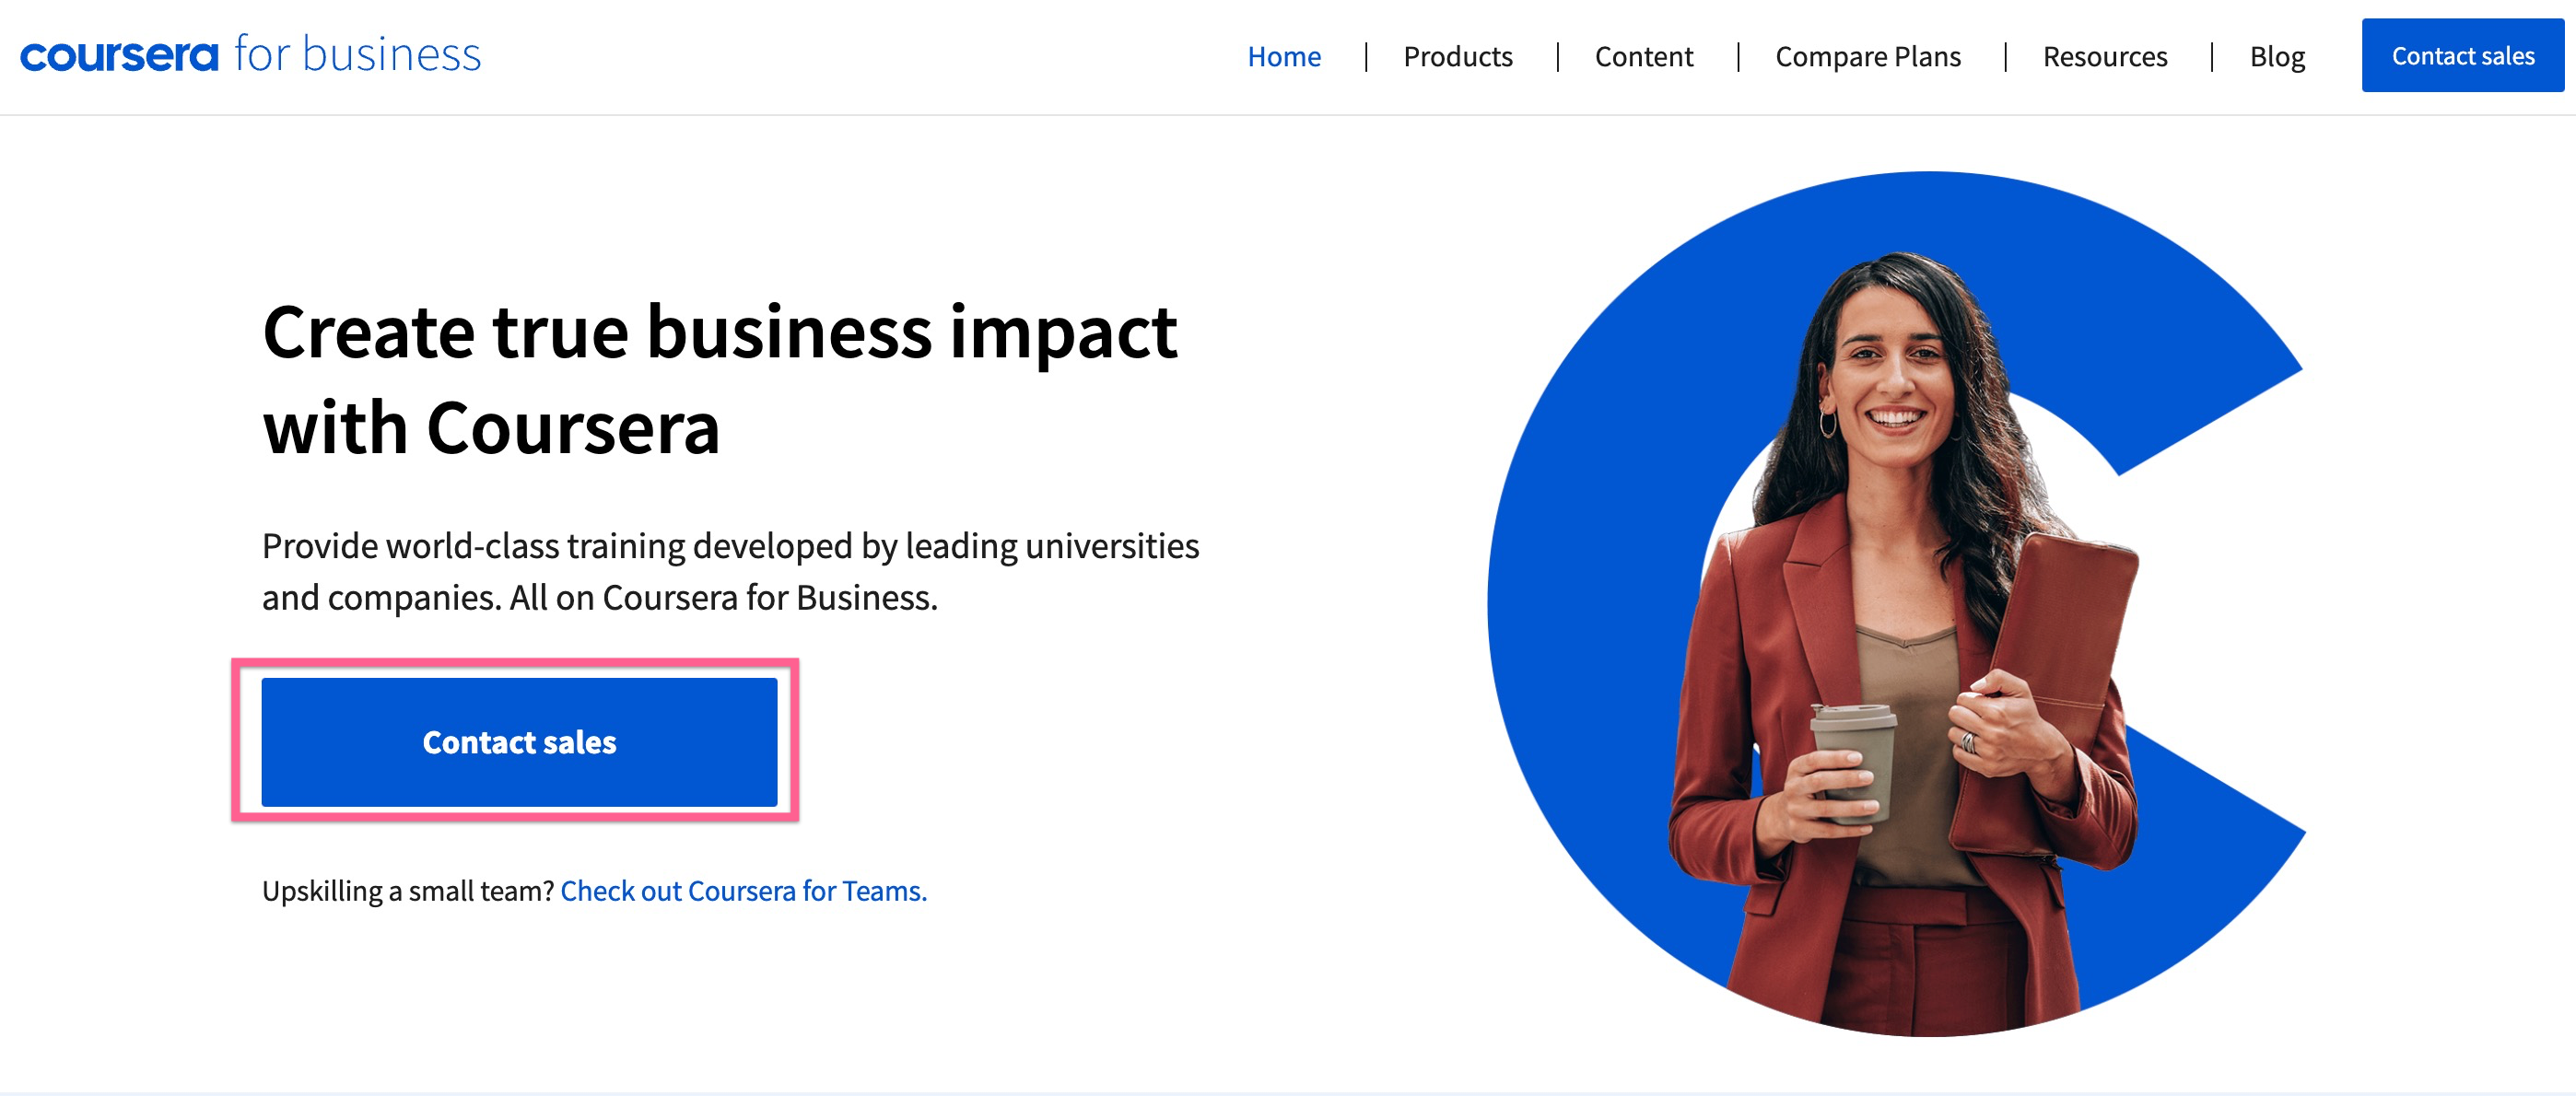 Coursera for Business